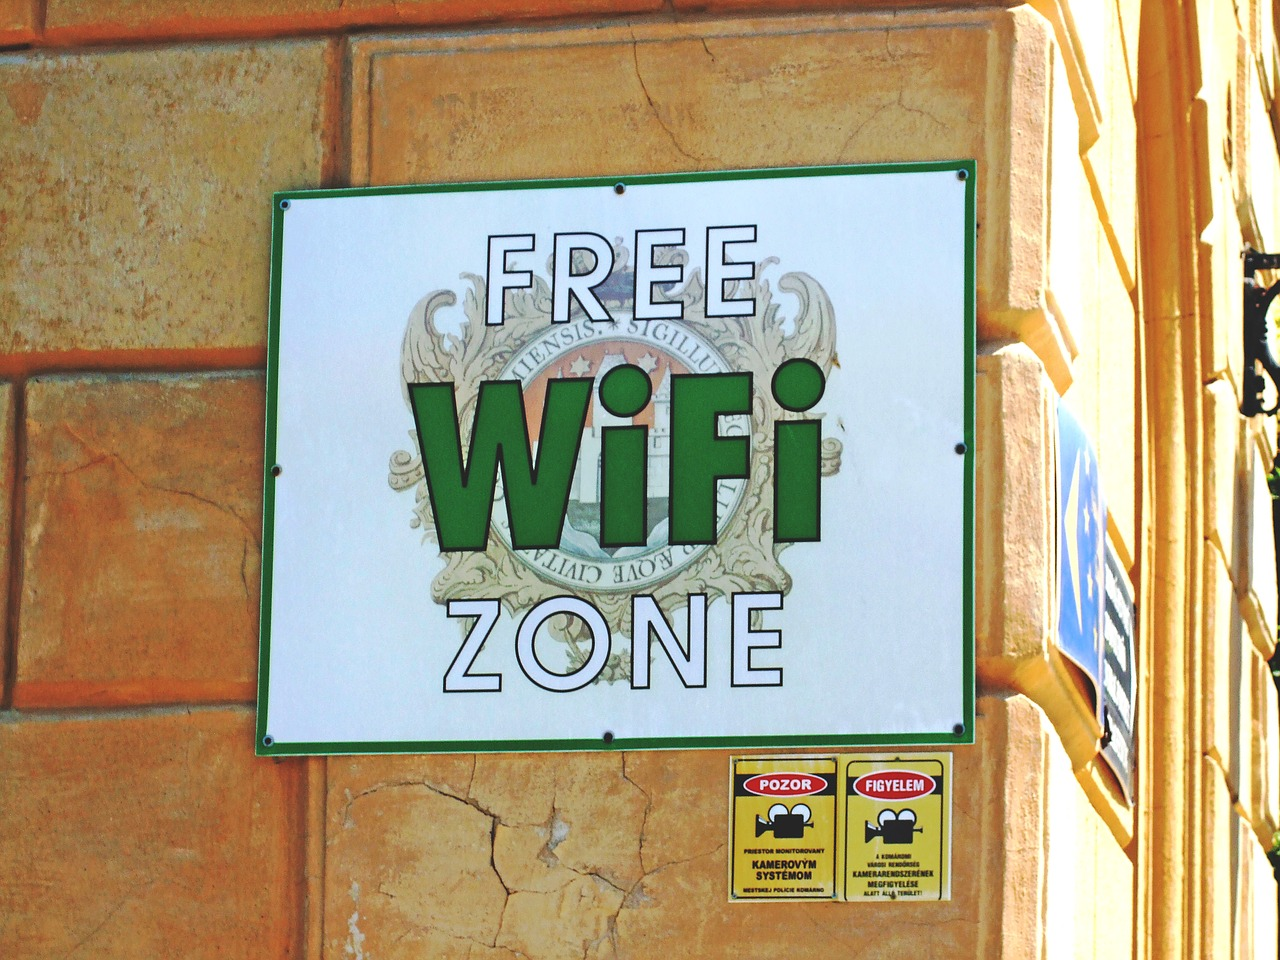 Wi-fi was invented in 1992 by an Australian radio-astronomer, John O' Sullivan. (Image via pixabay / CC0 1.0)